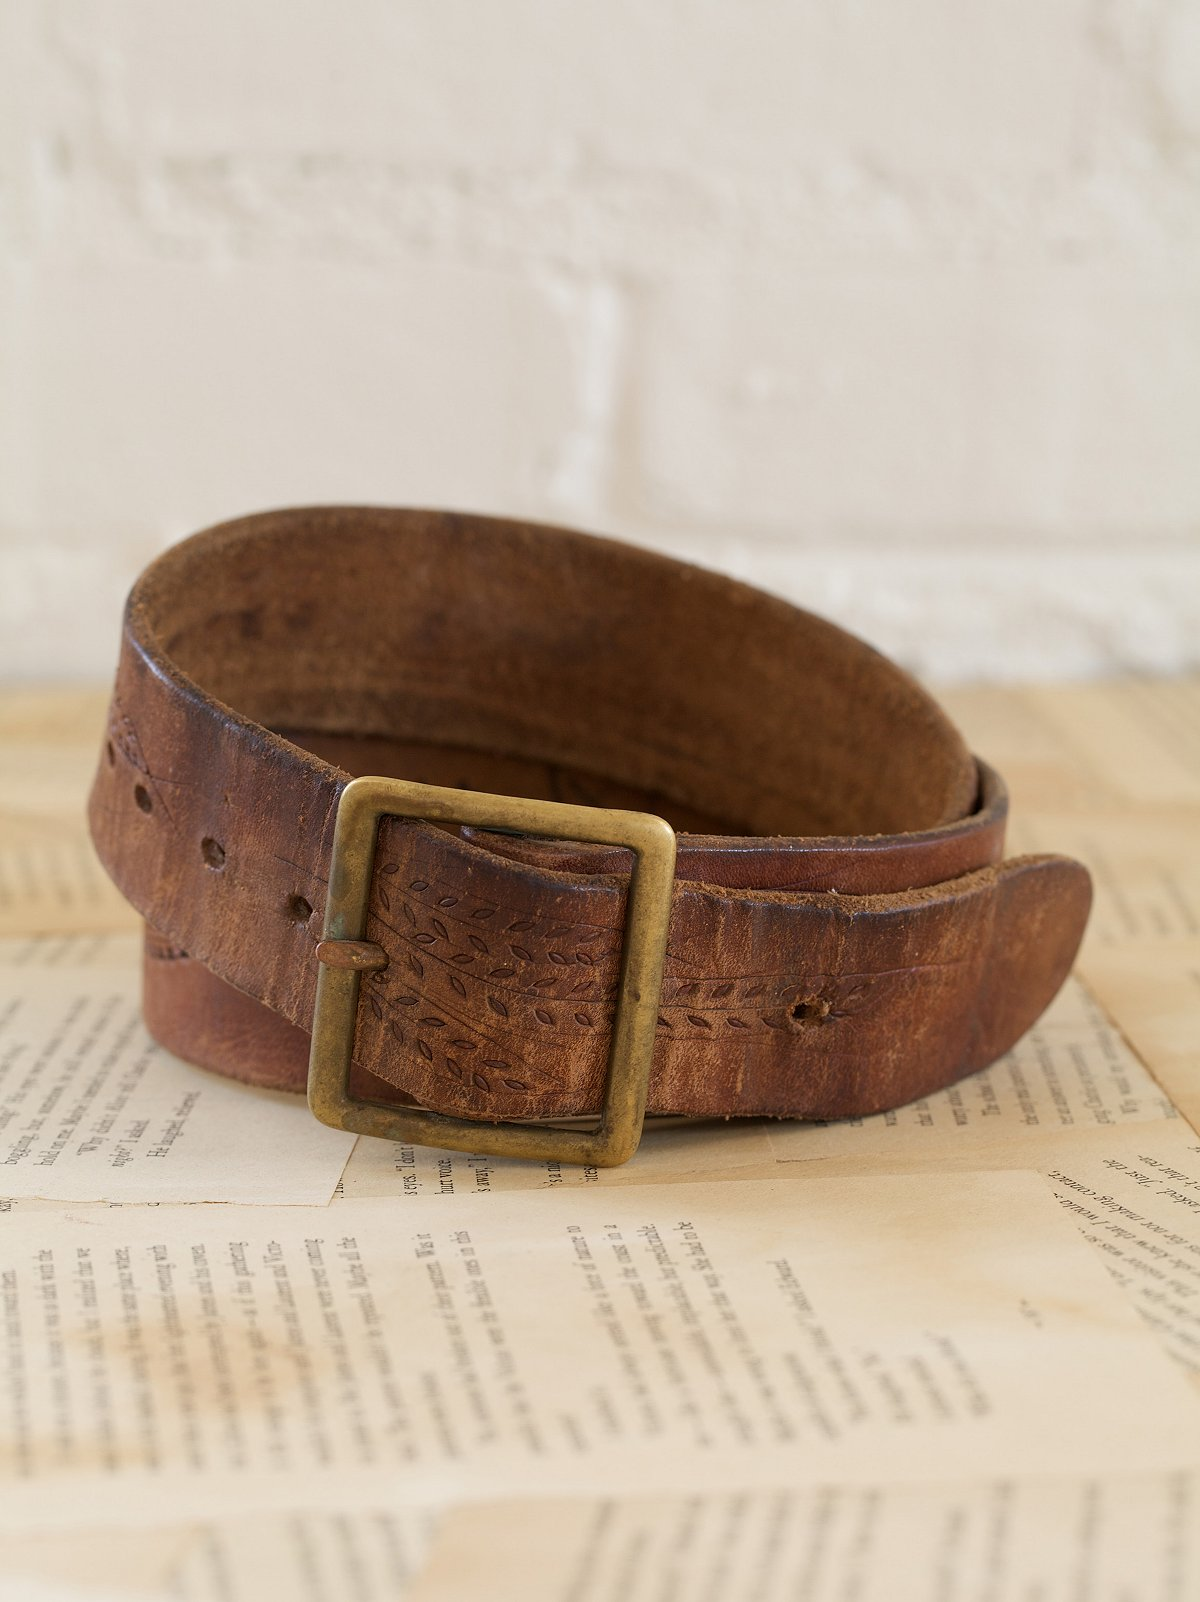 Vintage Leather Belt with Stamped Leaves